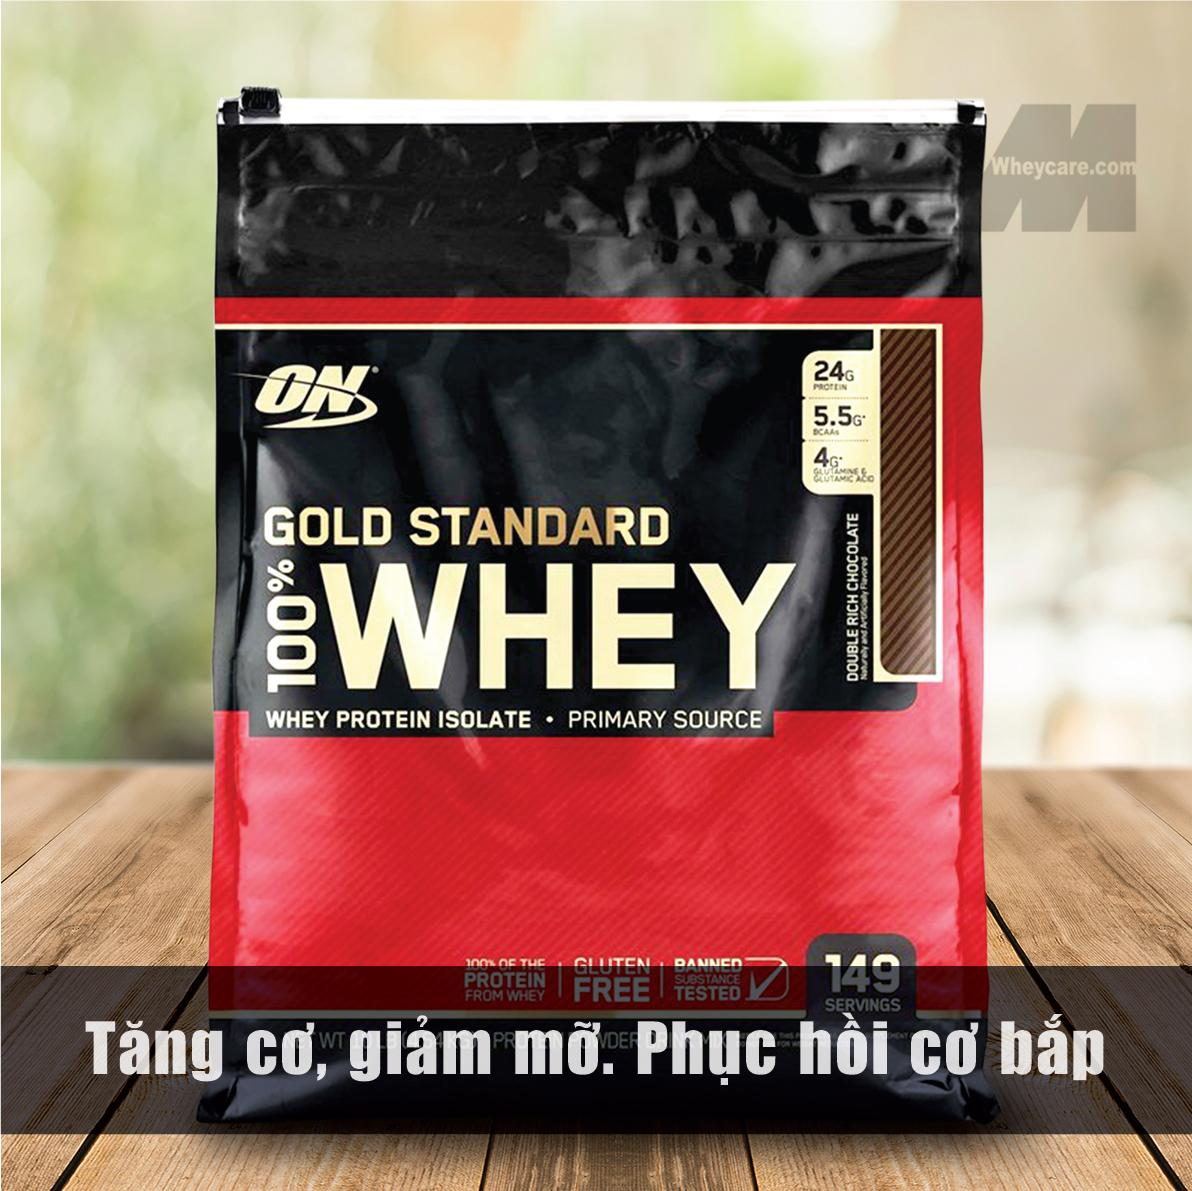 ON GOLD STANDARD WHEY, 10 LBS - 4.54 KG